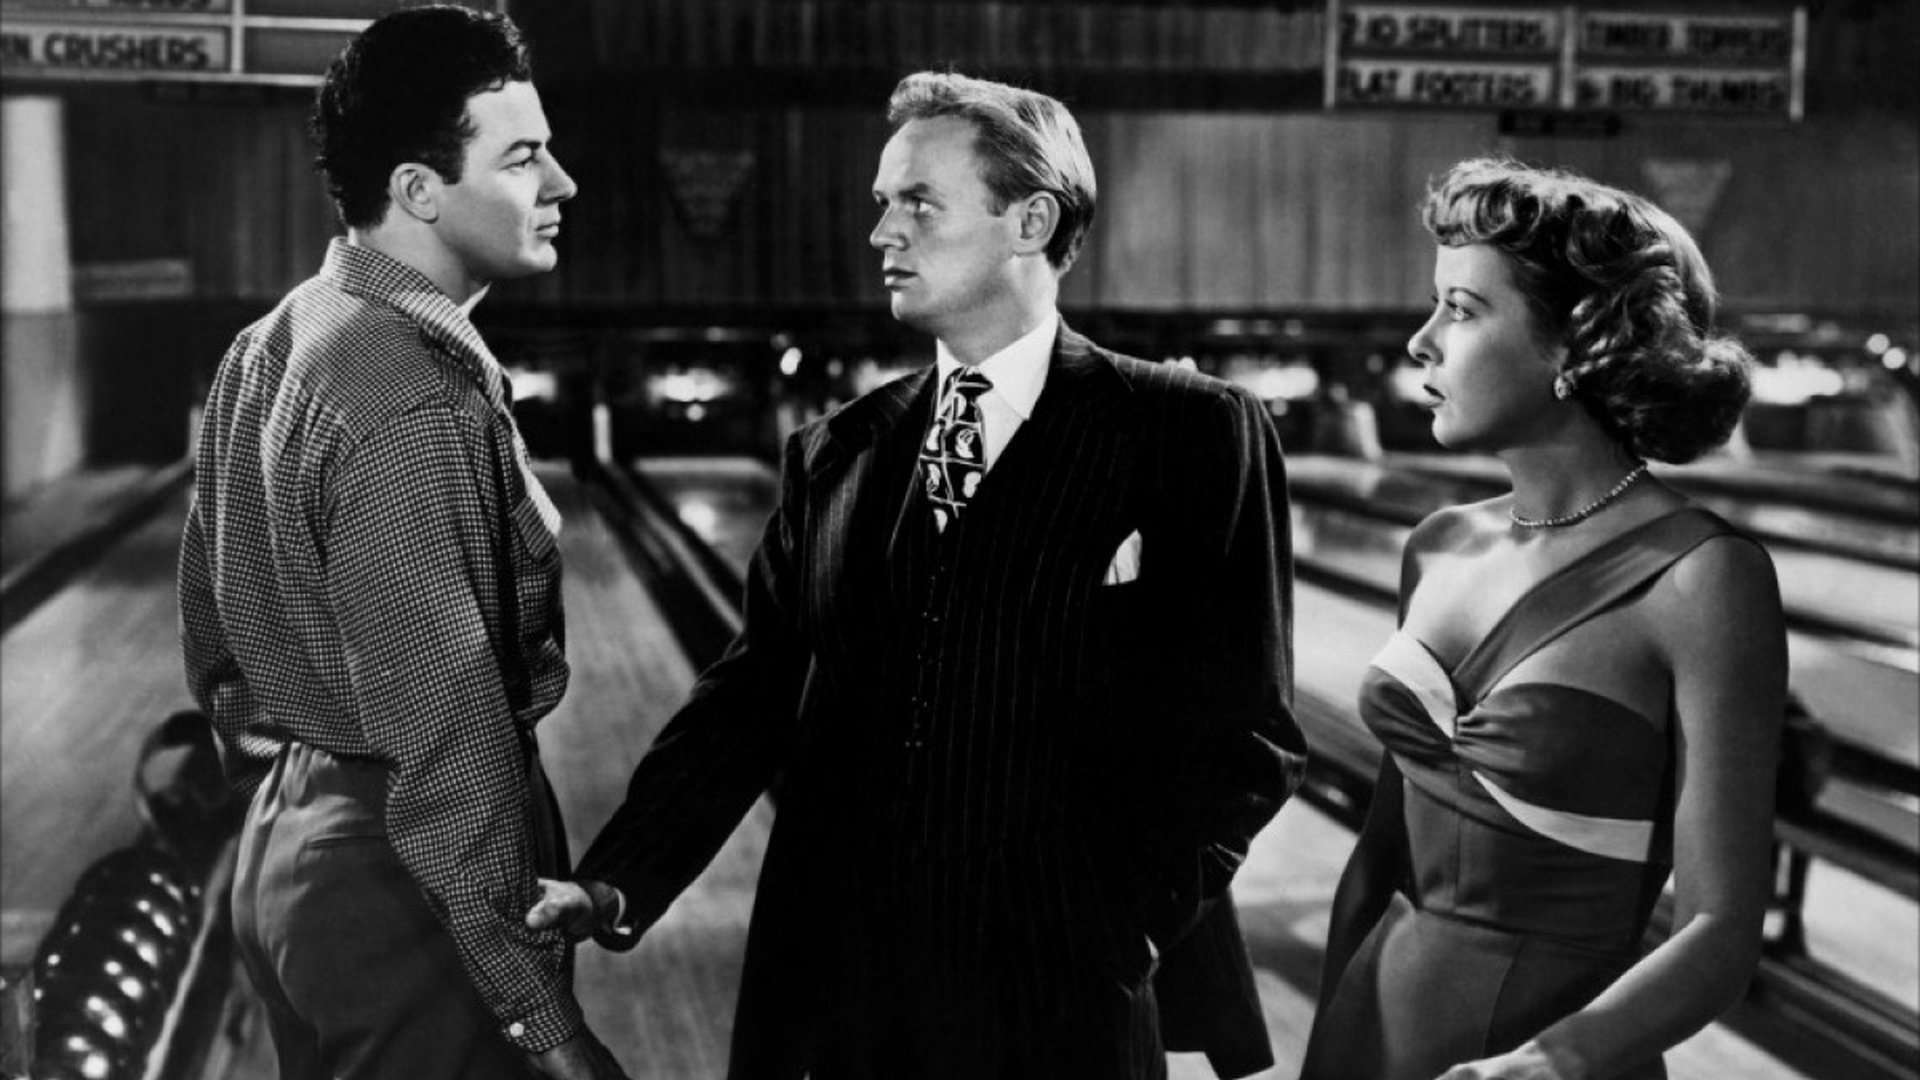 Manager Pete Morgan (Cornel Wilde), Jefferson T.